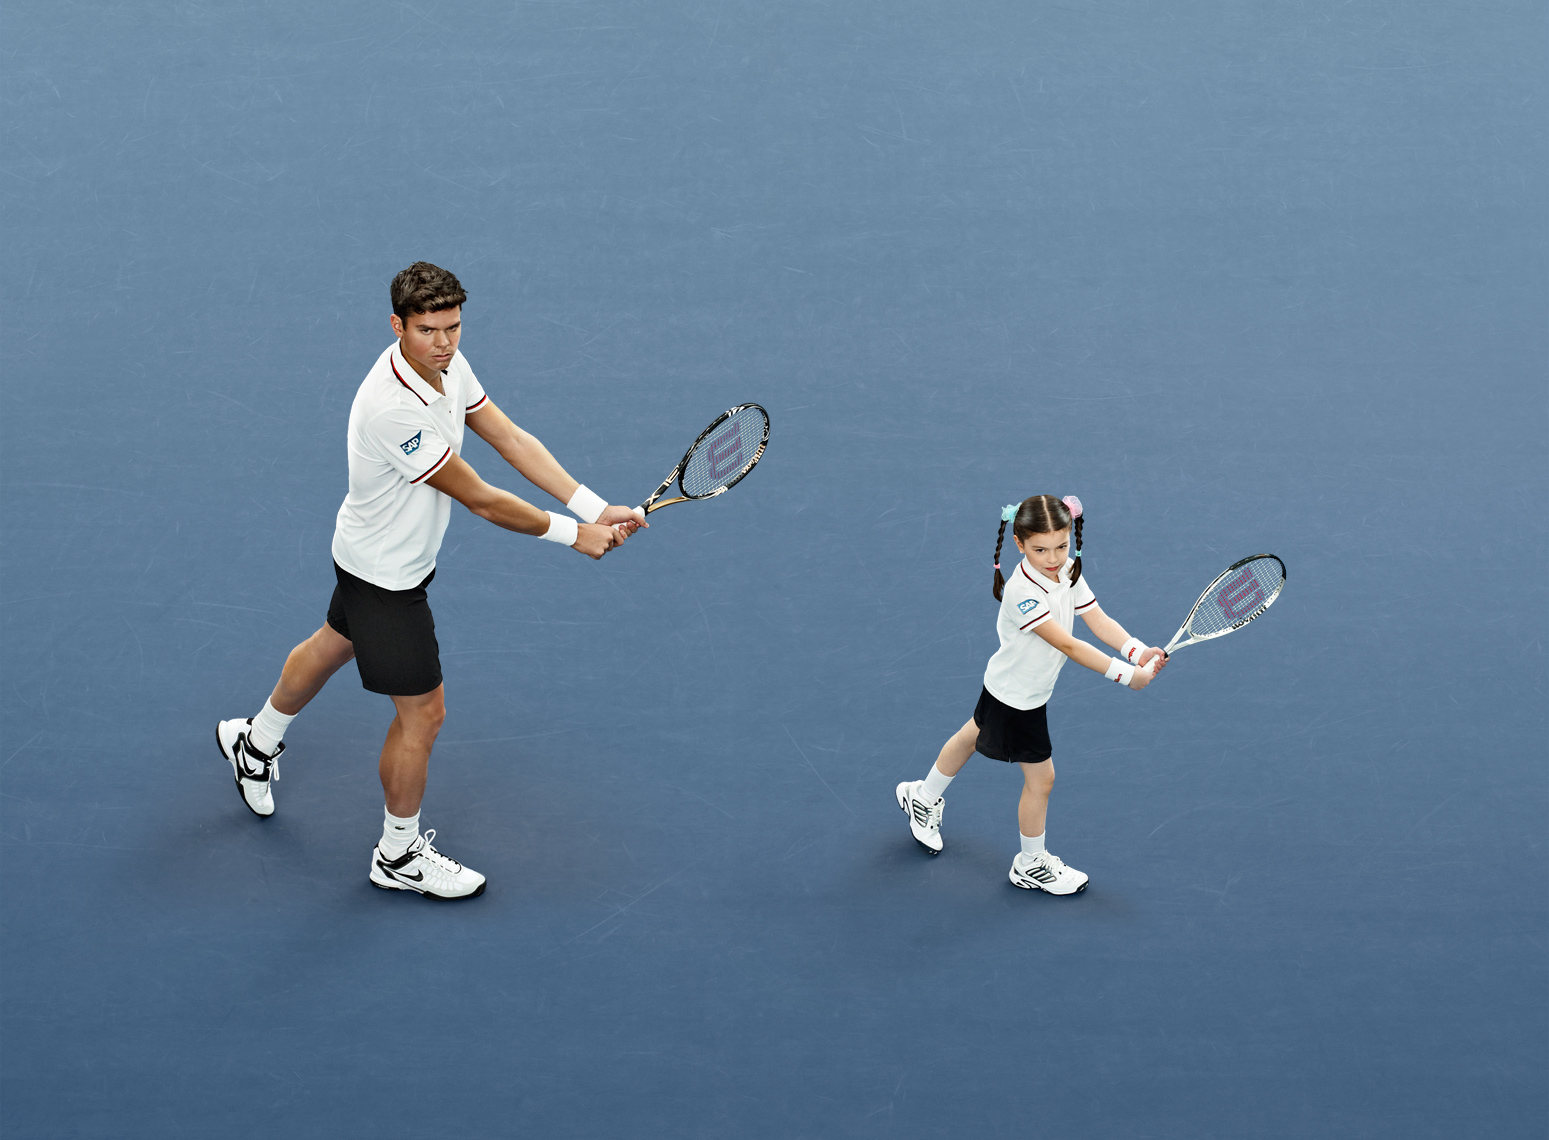 Kids_Tennis-White